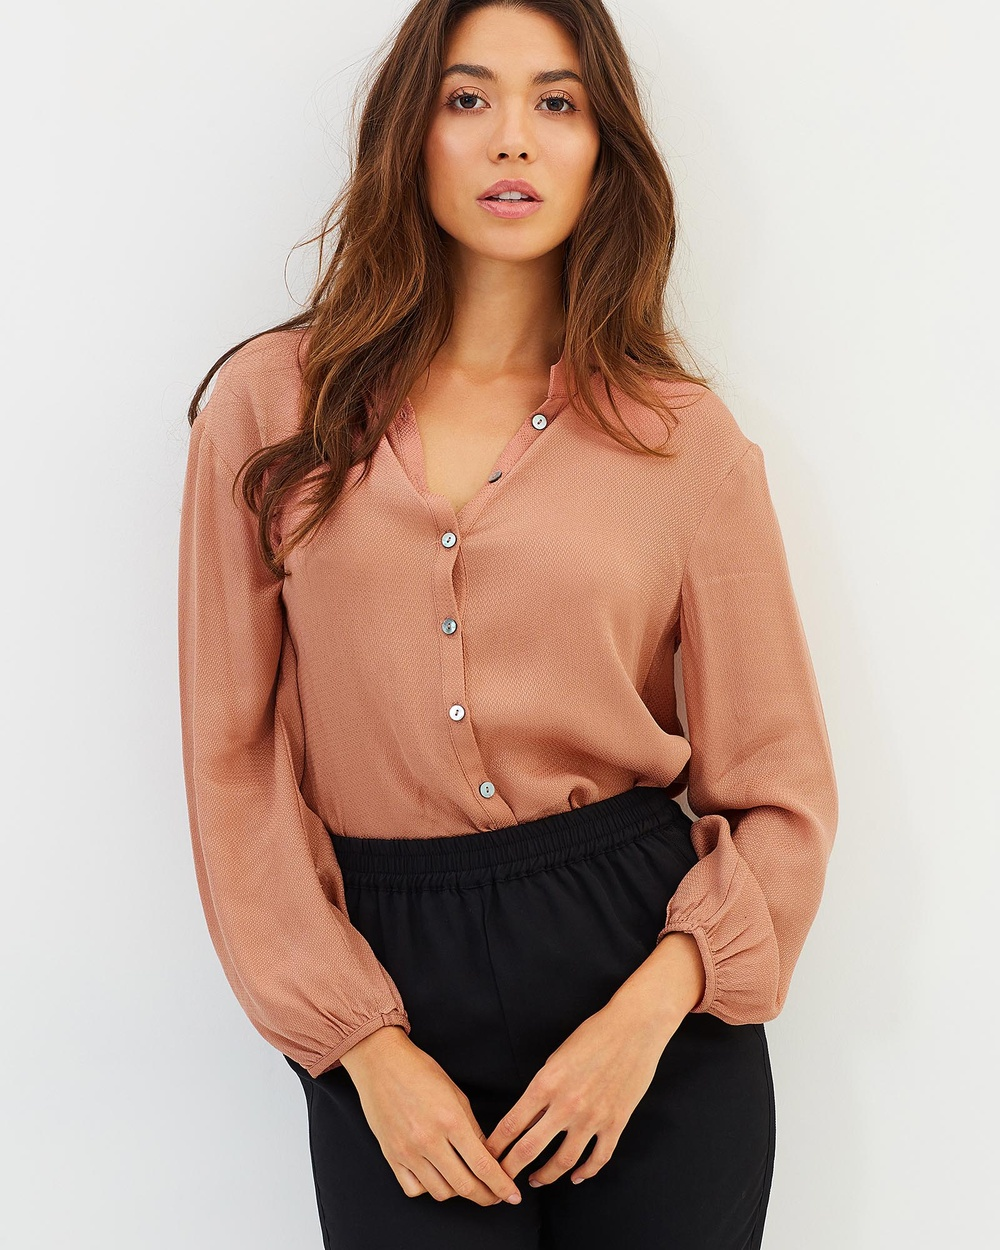 Privilege Ever After Swing Blouse Tops Soft Pink Ever After Swing Blouse